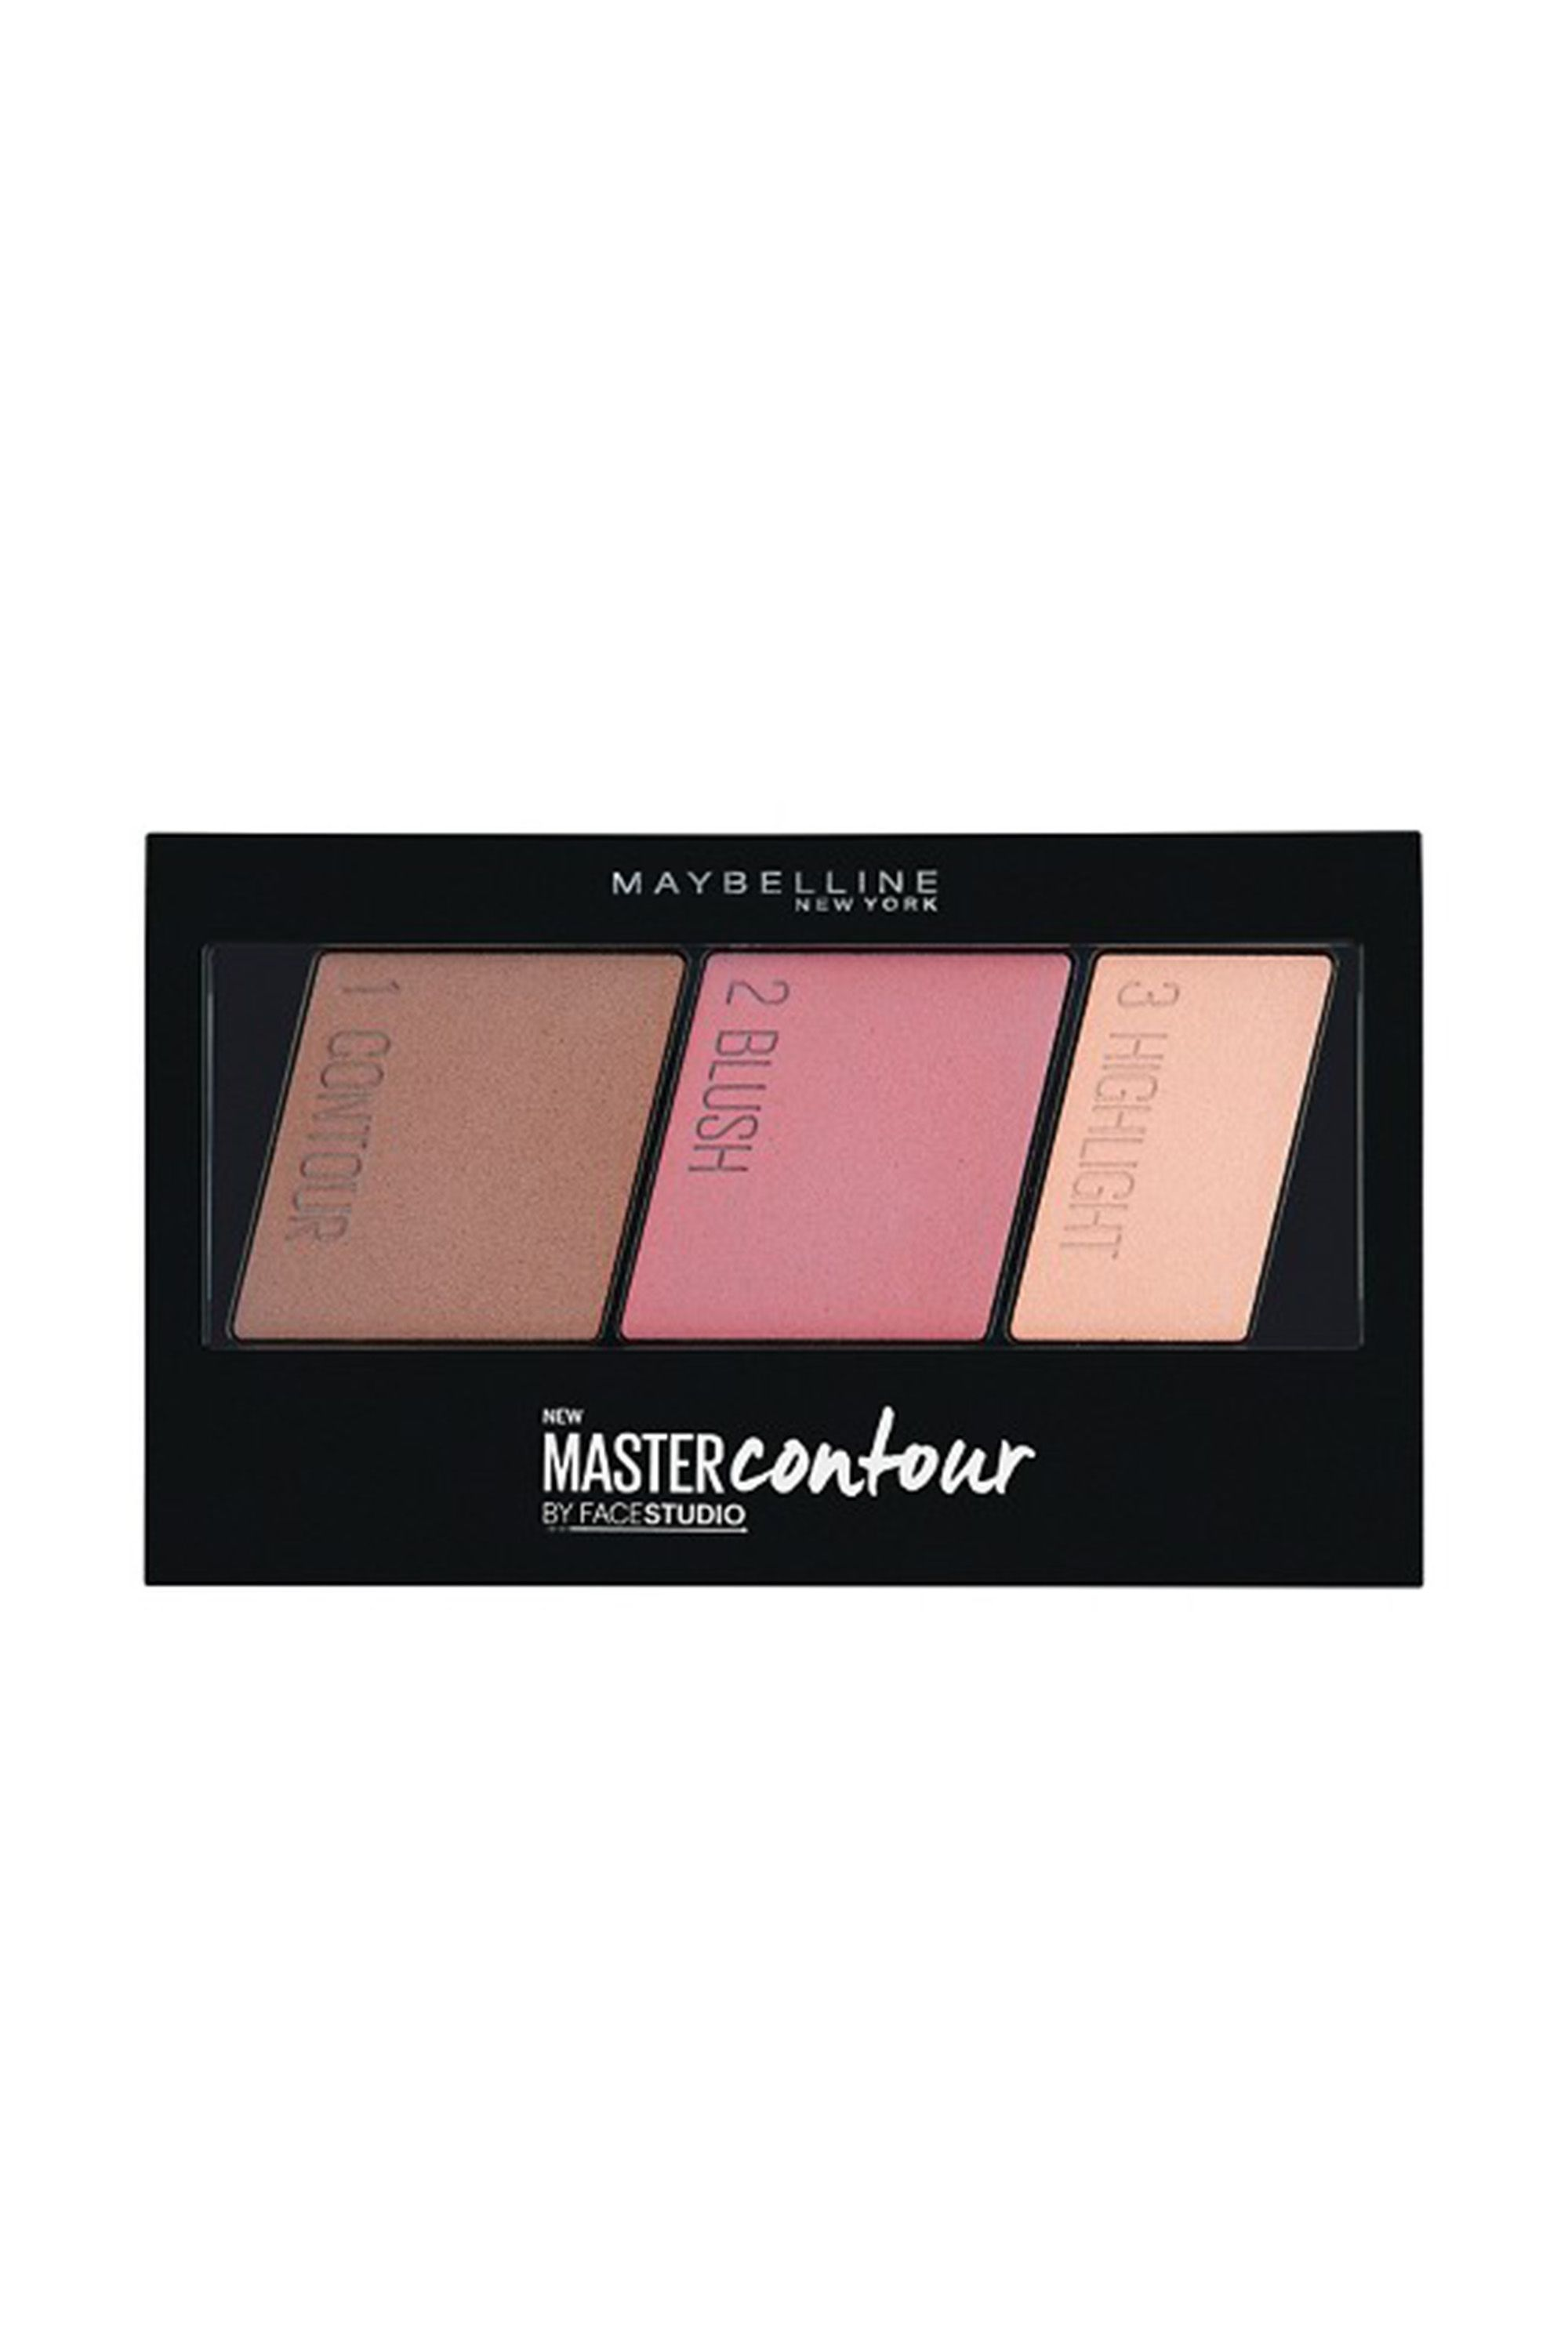 6 Best Drugstore Contour Makeup Kits Cheap Contouring Palettes Maybelline Face Studio V Shape Powder 01 Light Med That Look Great